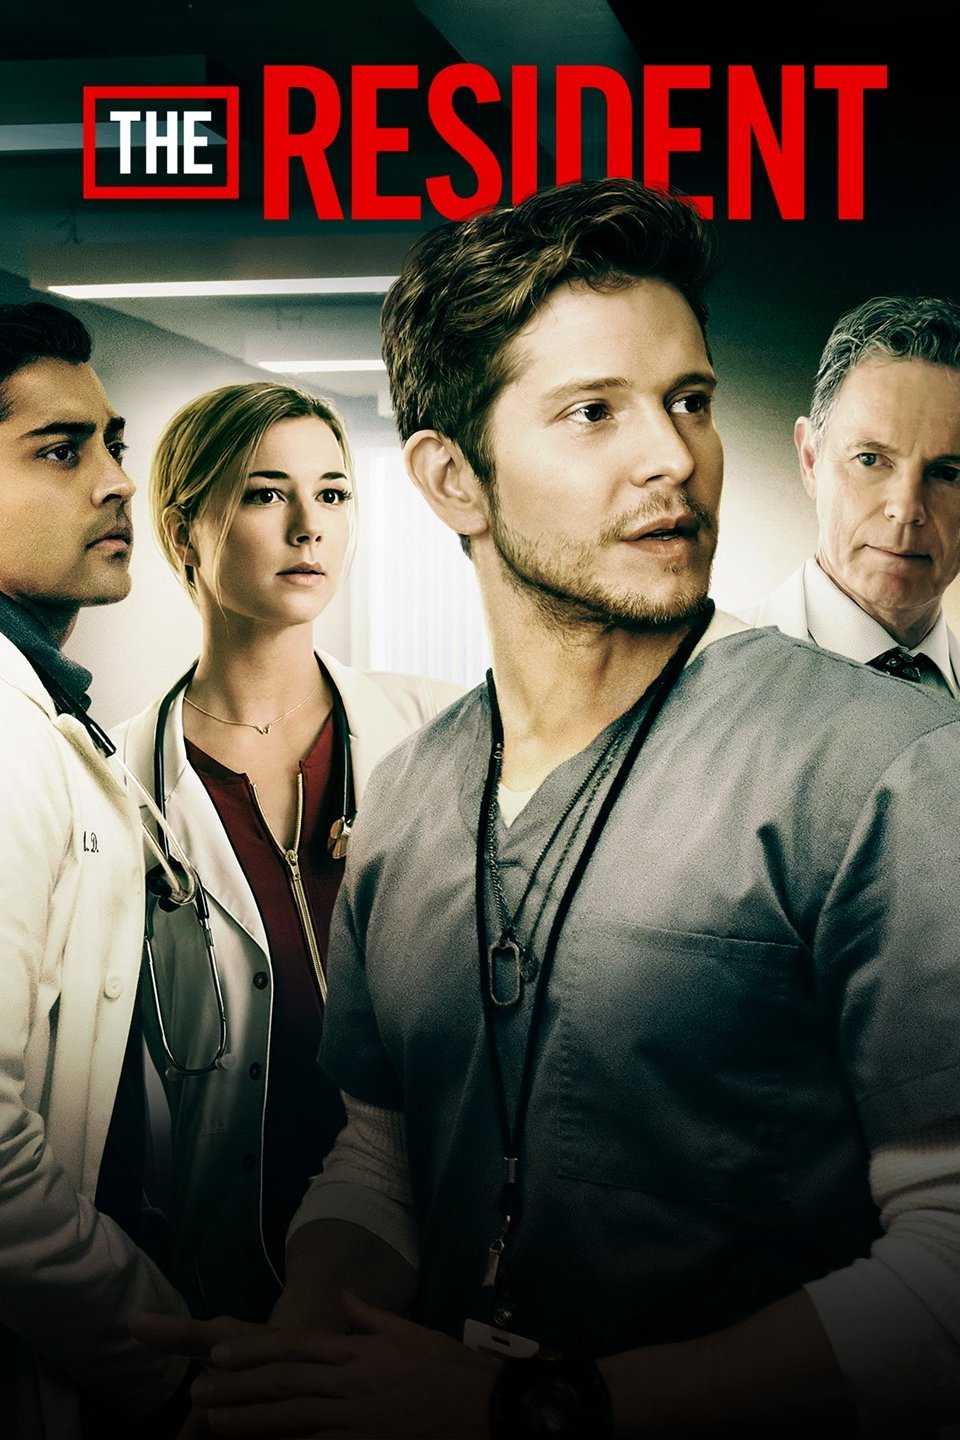 The Resident Season 1 Episode 8 Download HDTV 480p 720p